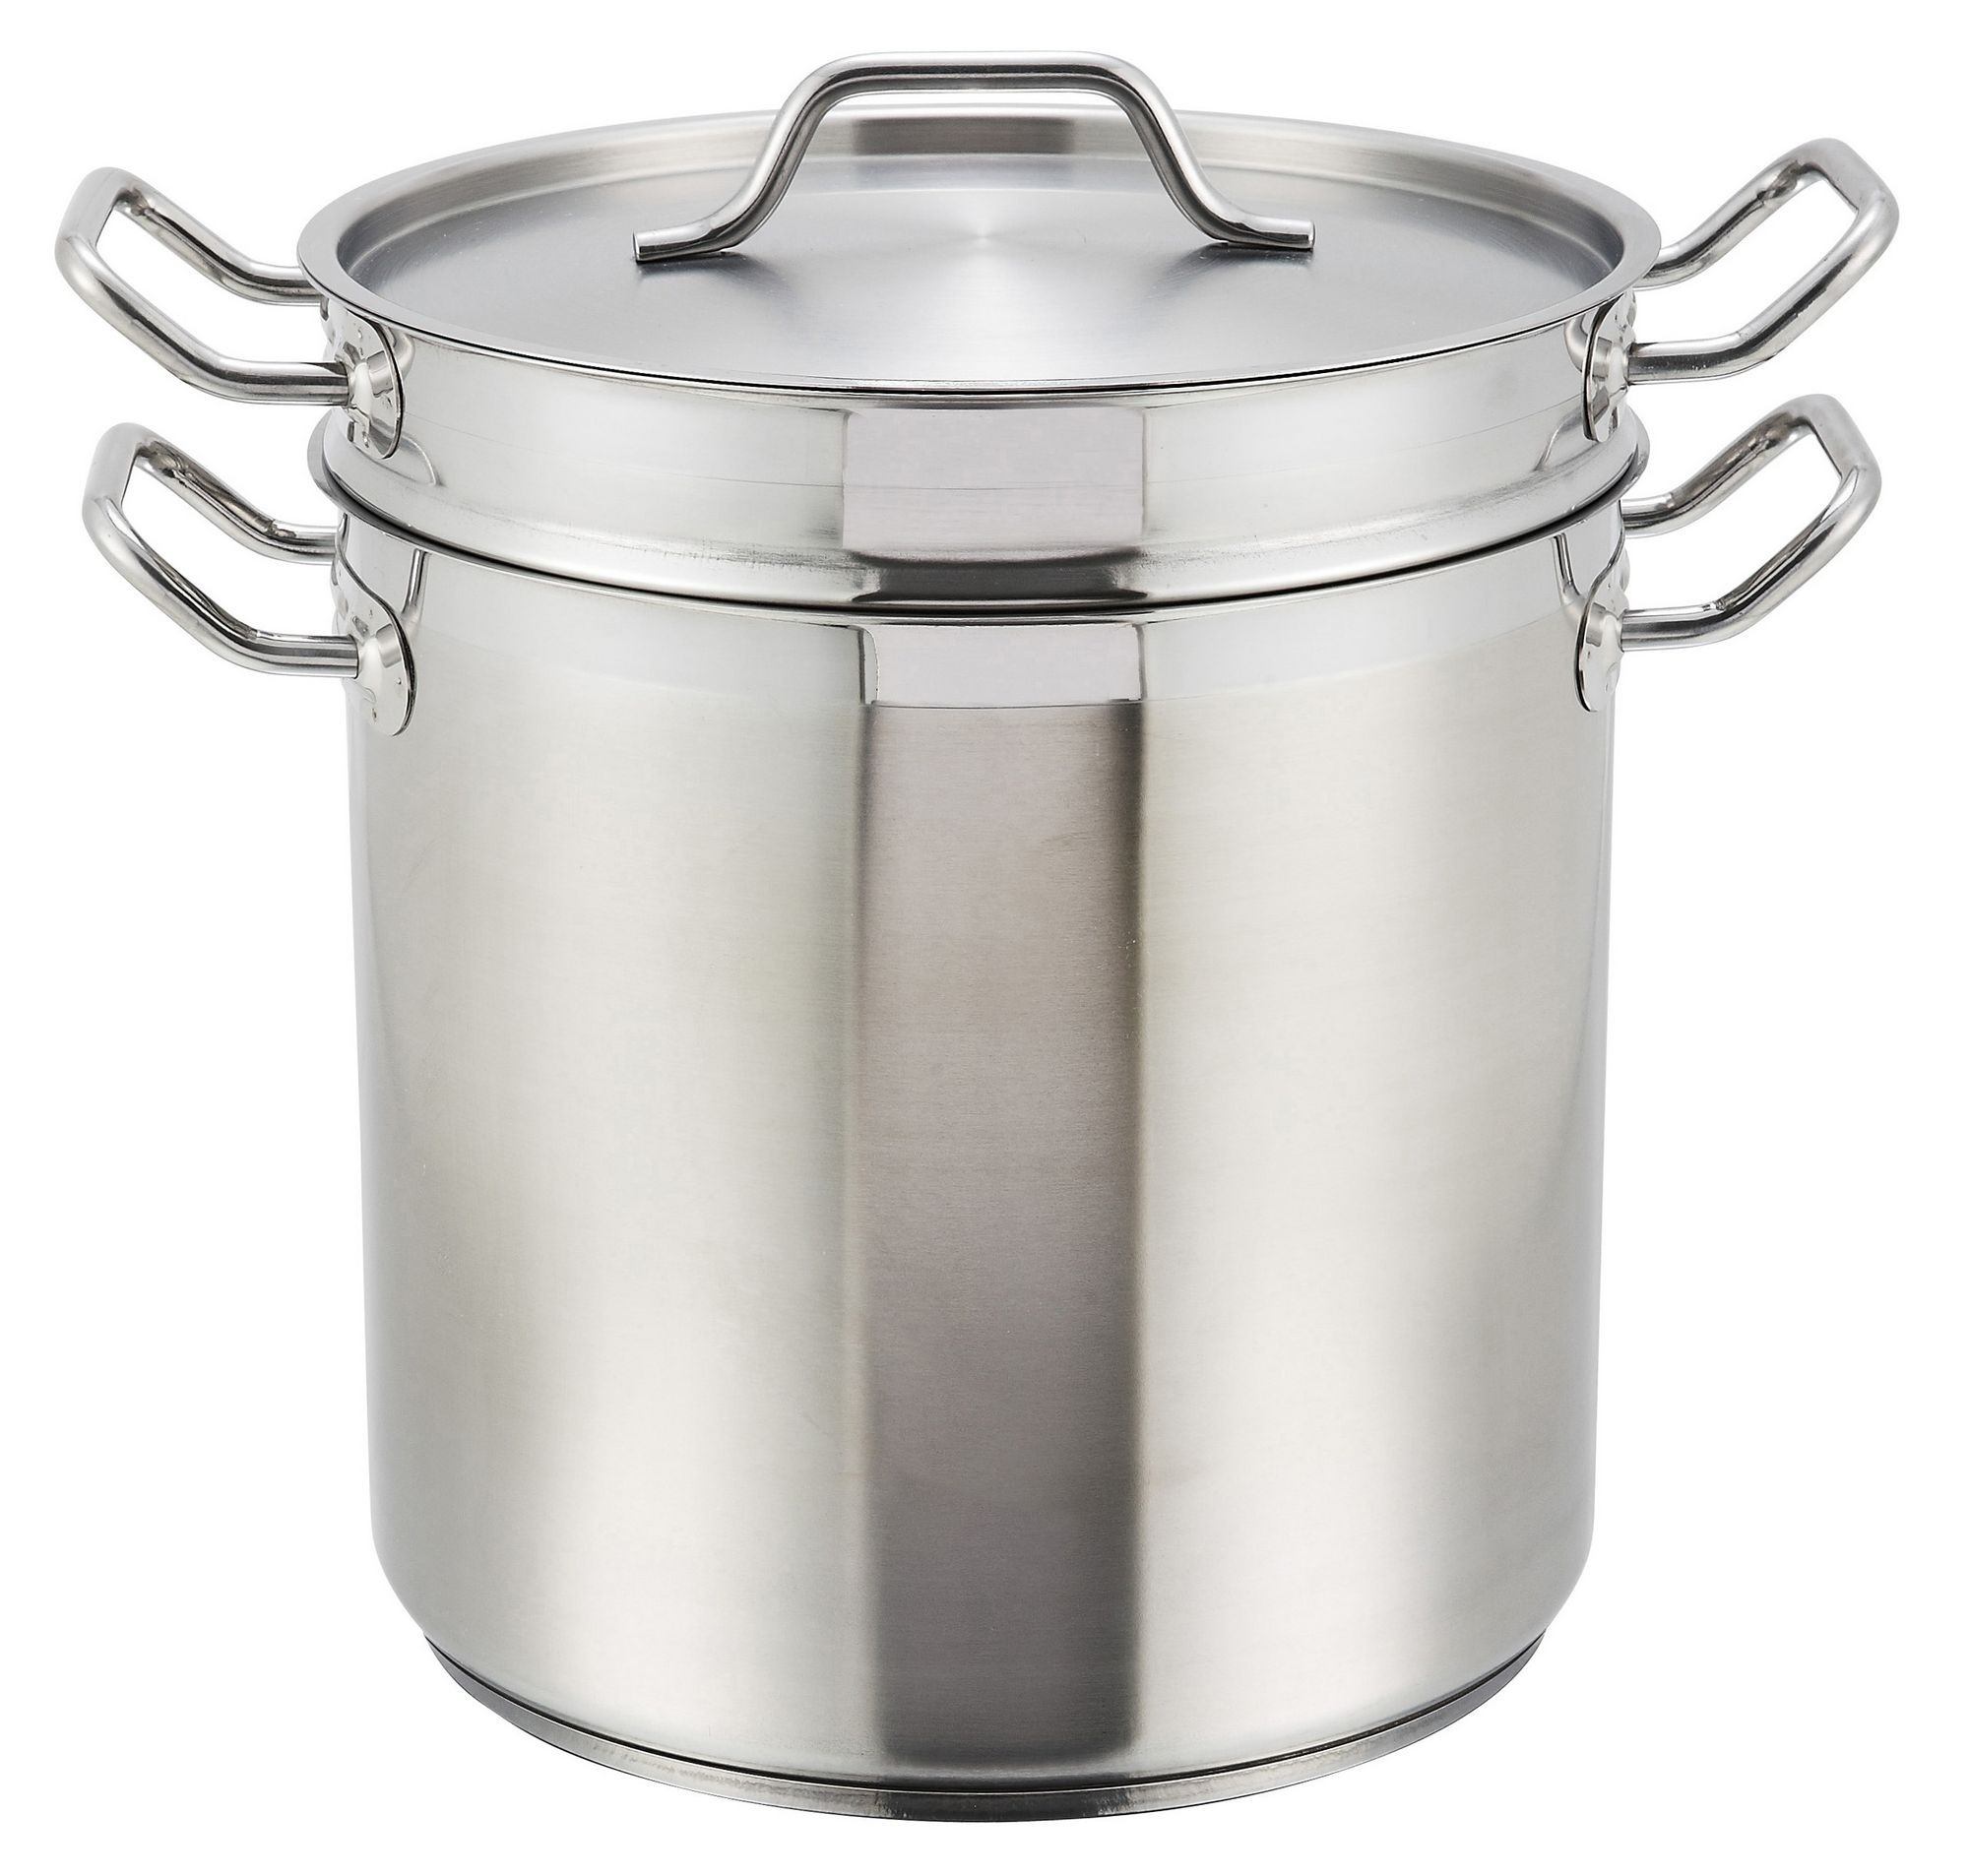 Stainless Steel 8-Qt Master Cook Double Boiler With Cover (5 mm aluminum core NSF)